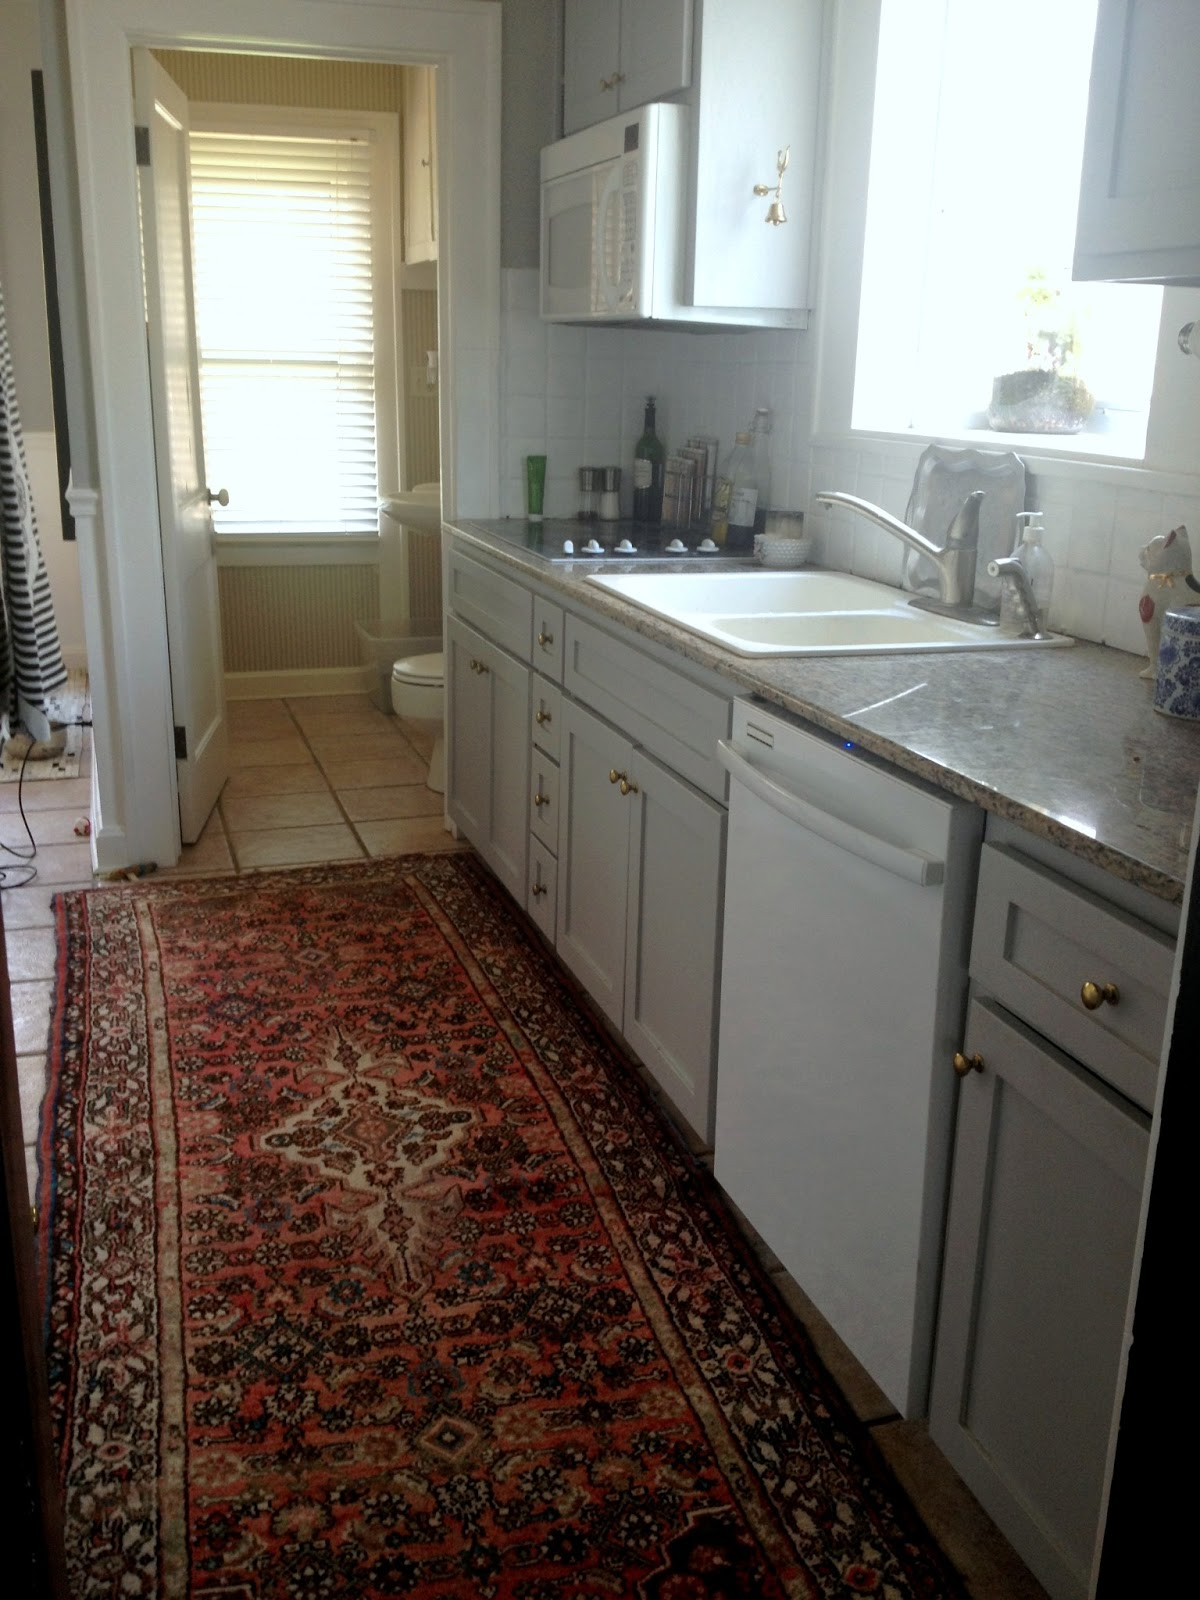 Kitchen Runner Rugs. Kitchen Runner Rugs G